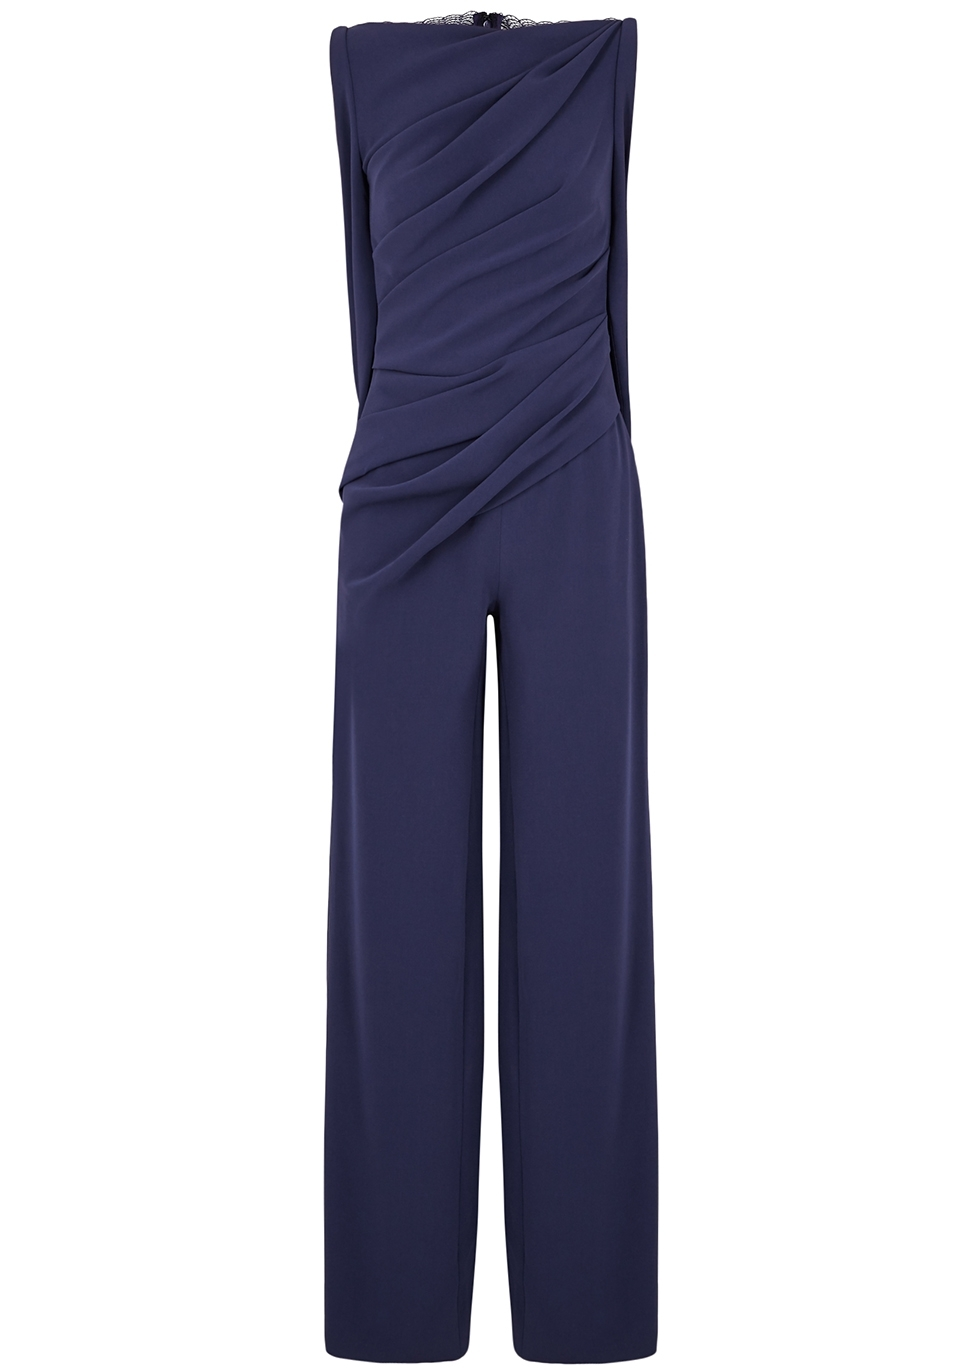 f2e8592cea3 Designer Jumpsuits and Luxury Playsuits - Harvey Nichols